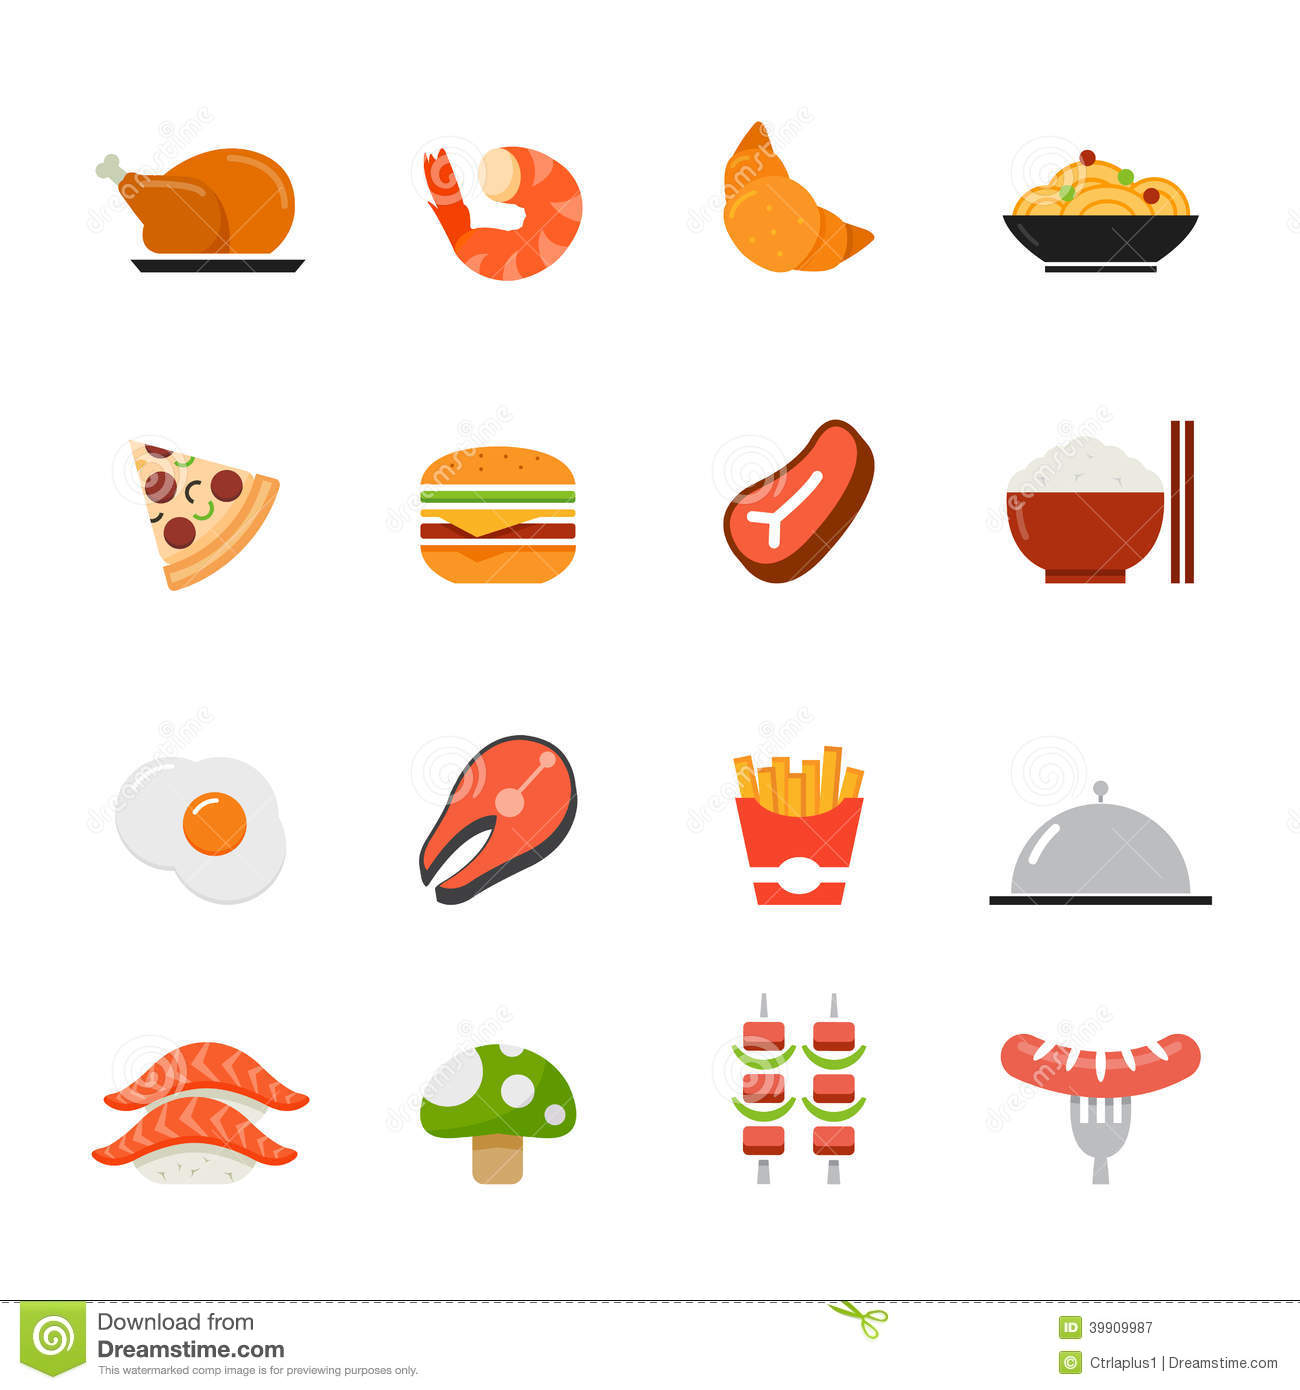 Food Icon. Flat Full Colors Design. Stock Vector - Image: 39909987: www.dreamstime.com/royalty-free-stock-photography-food-icon-flat...